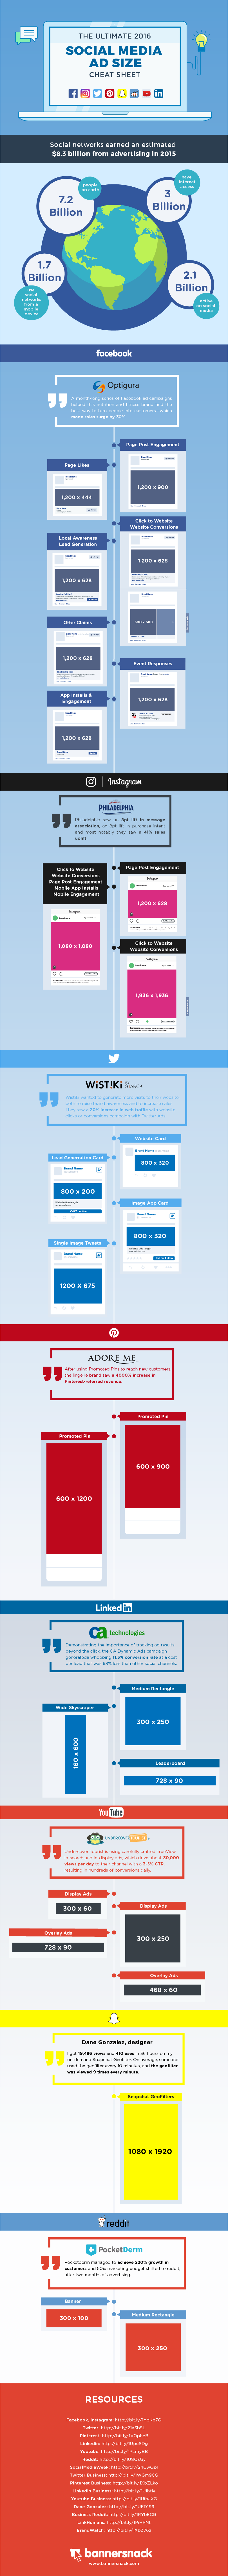 The Ultimate 2016 Social Media Ad Size Cheat Sheet #Infographic